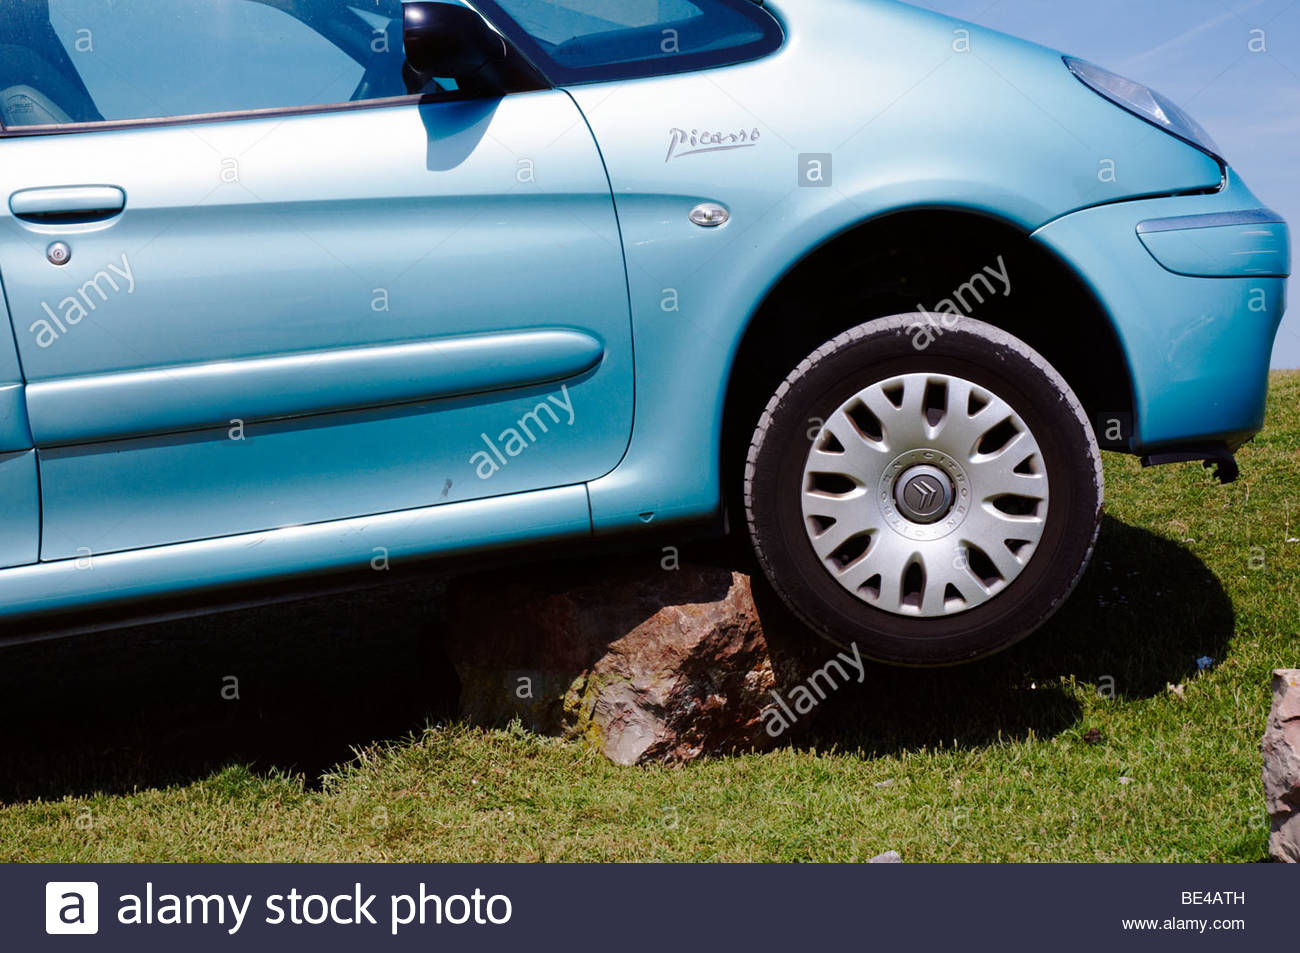 a motor car who's driver didn't apply the handbrake properly when parking and rolled back onto a large boulder - Stock Image